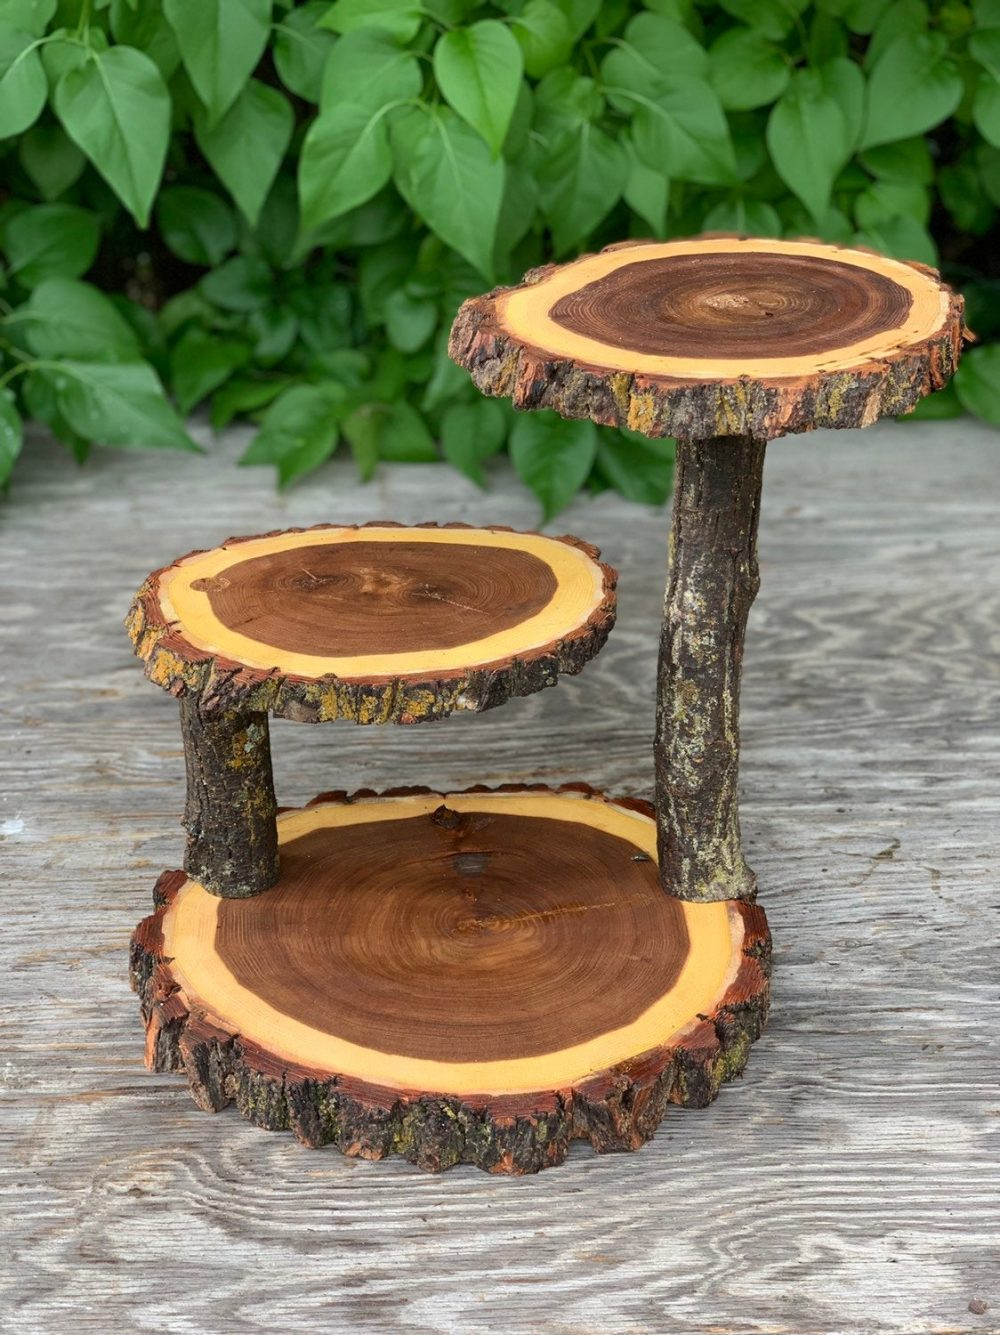 Jumbo 3 Tiered Elm Wood Rustic Cake 30 Cupcake Stand Collapsible Wedding Party Donut Outdoor Wedding Log Lumberjack Shower Wooden Tiered